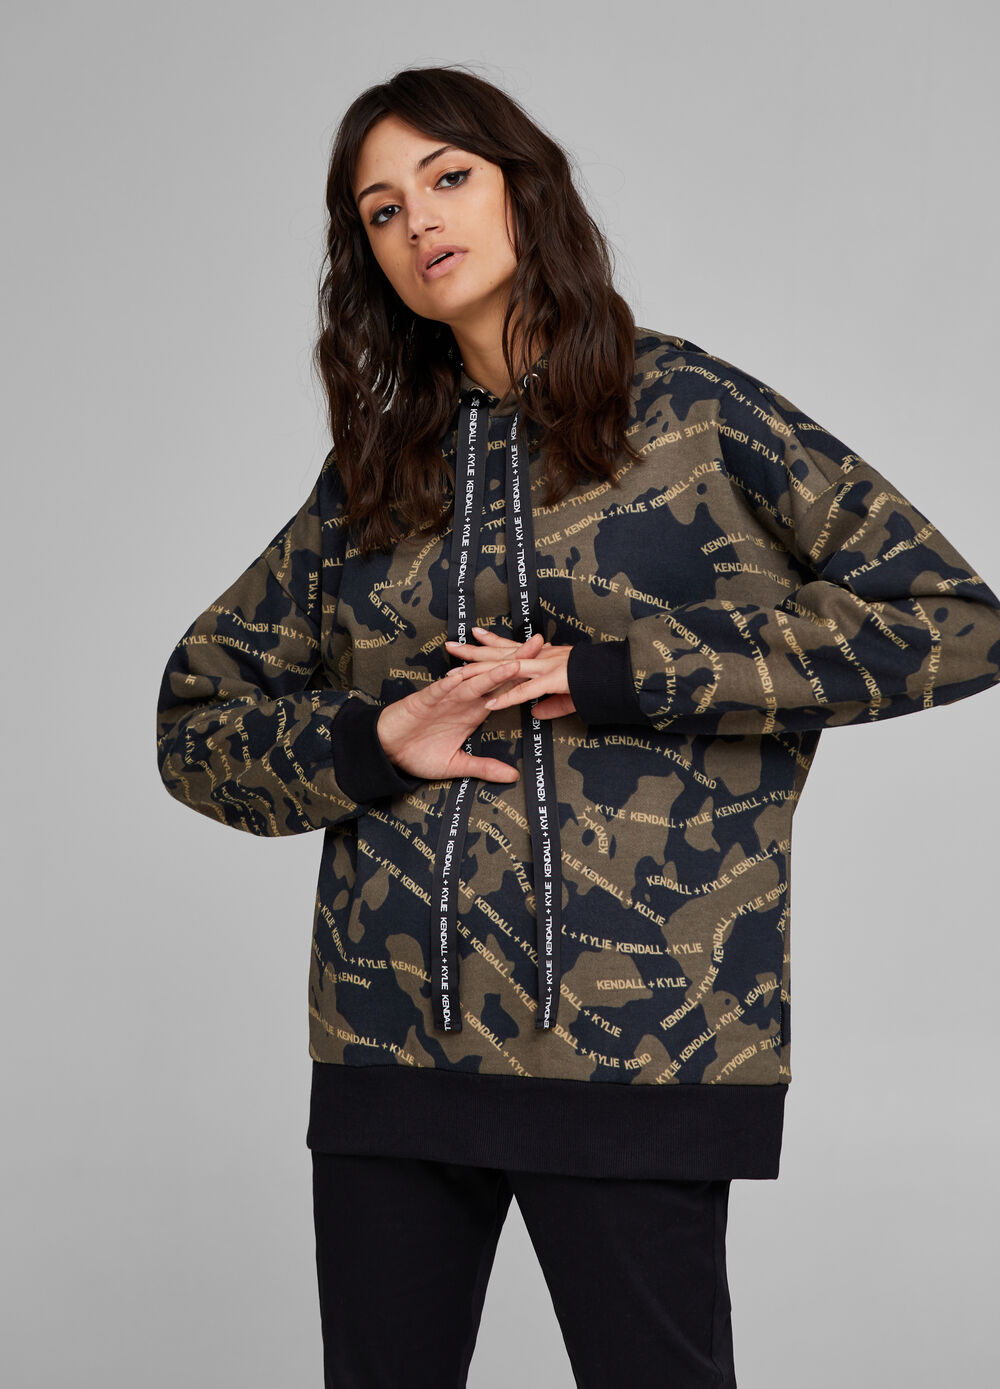 K+K for OVS camouflage sweatshirt